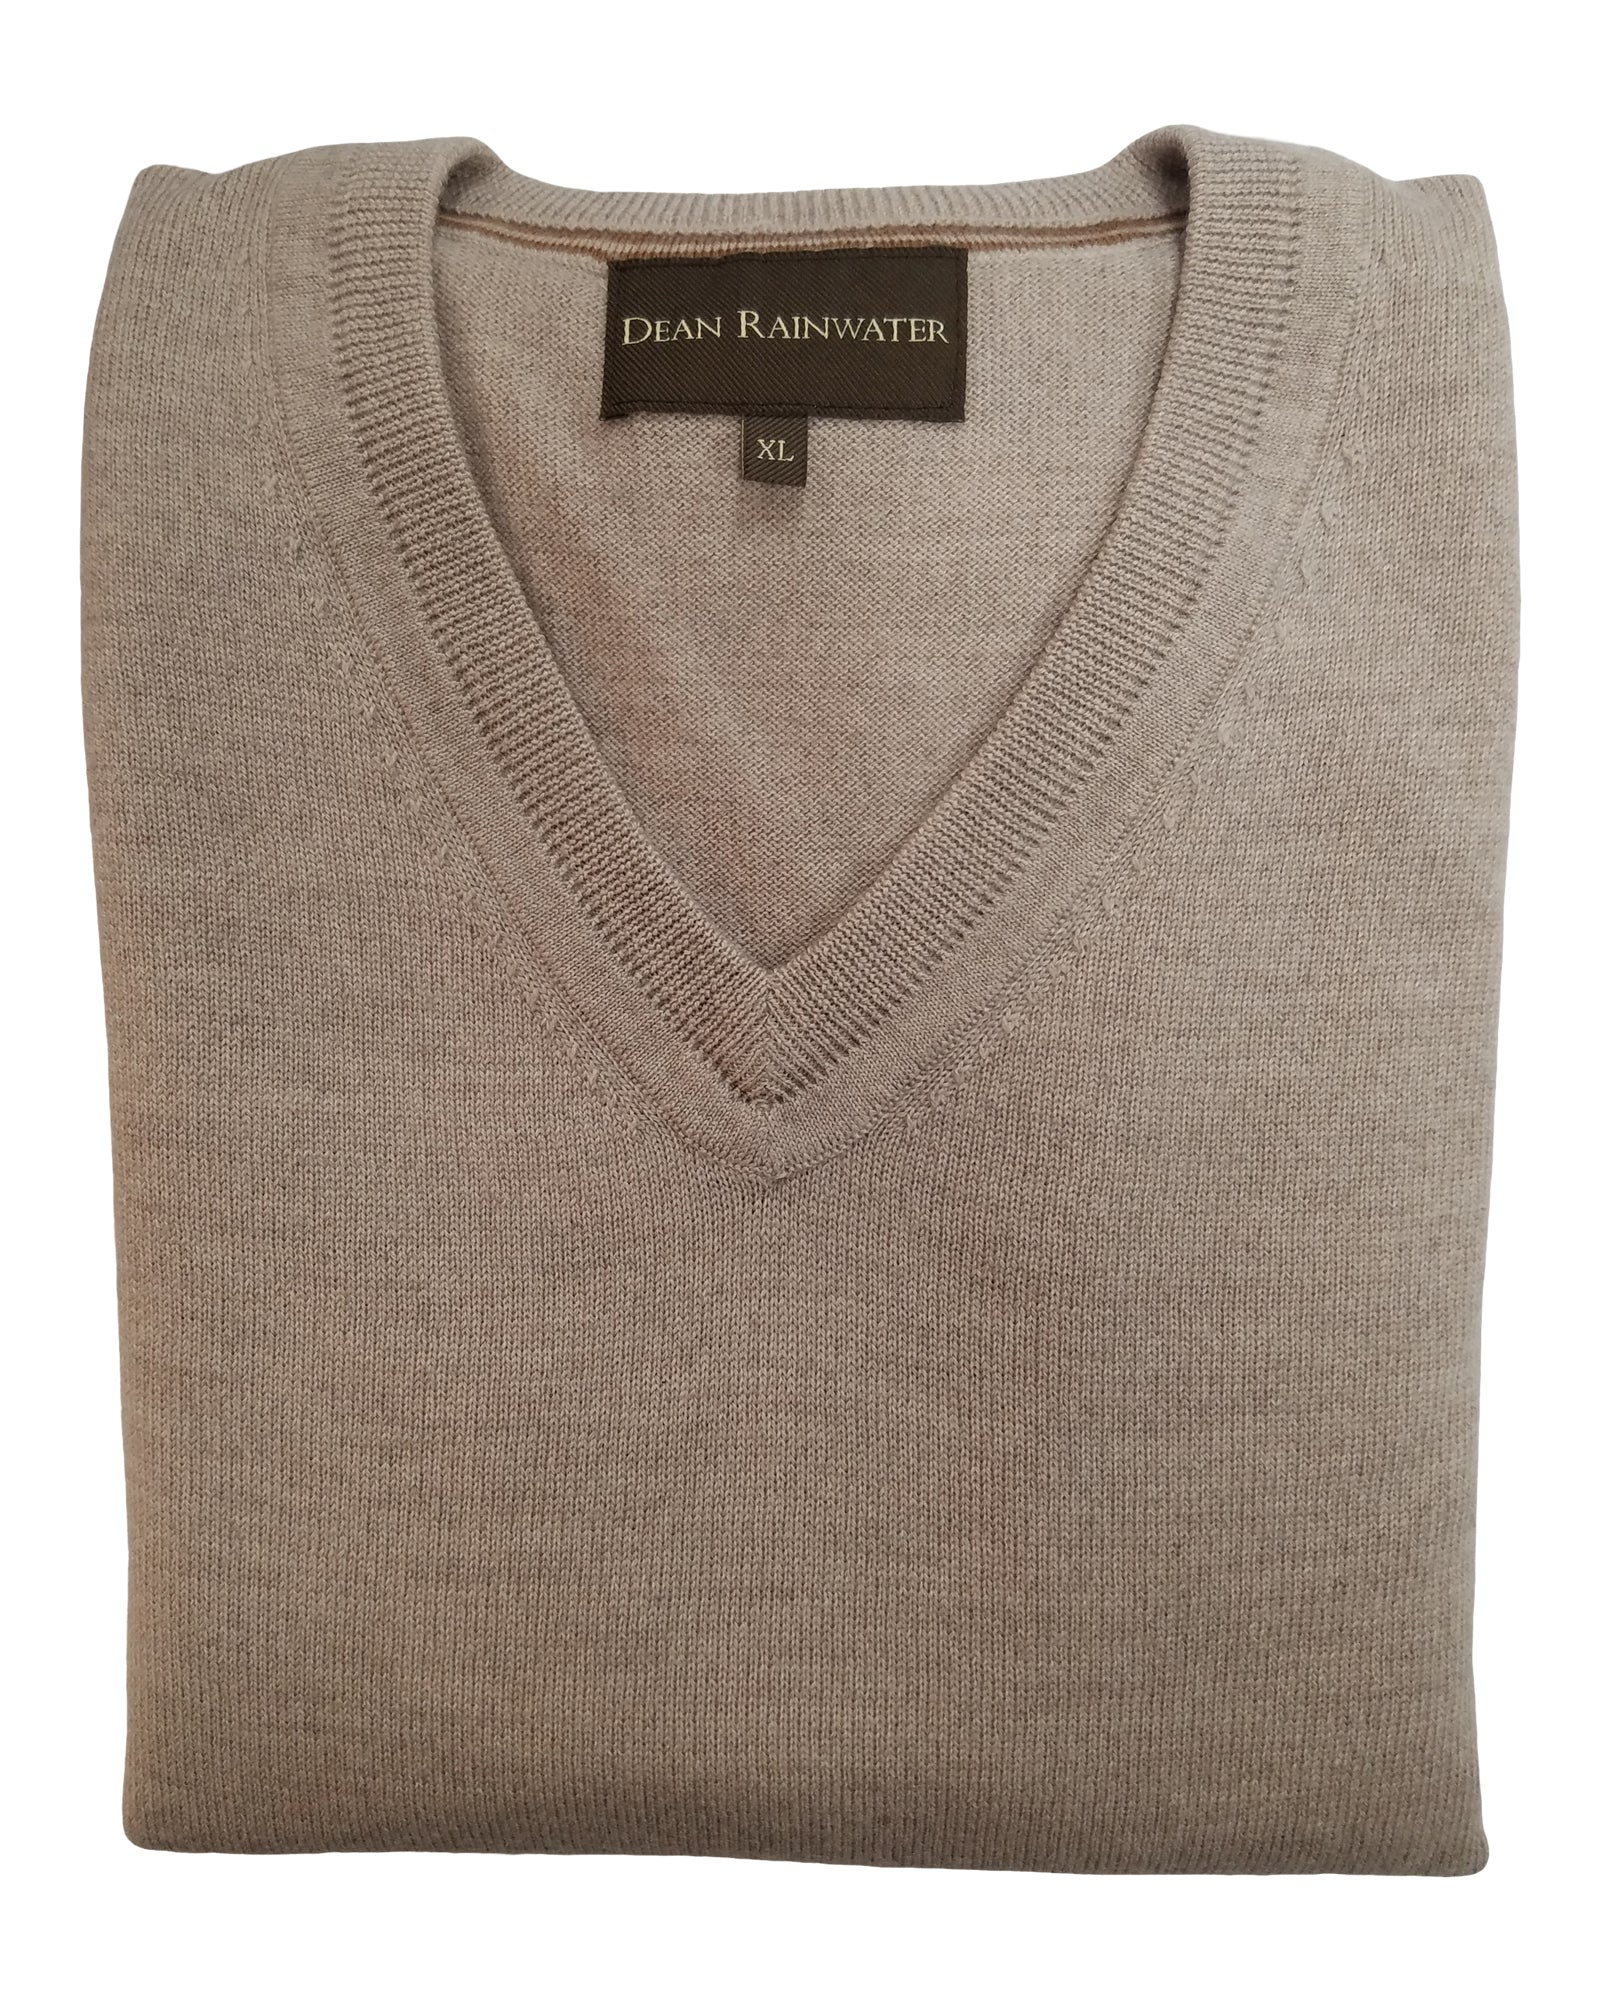 V-Neck Sweater in Oatmeal Extra Fine Merino Wool - Rainwater's Men's Clothing and Tuxedo Rental